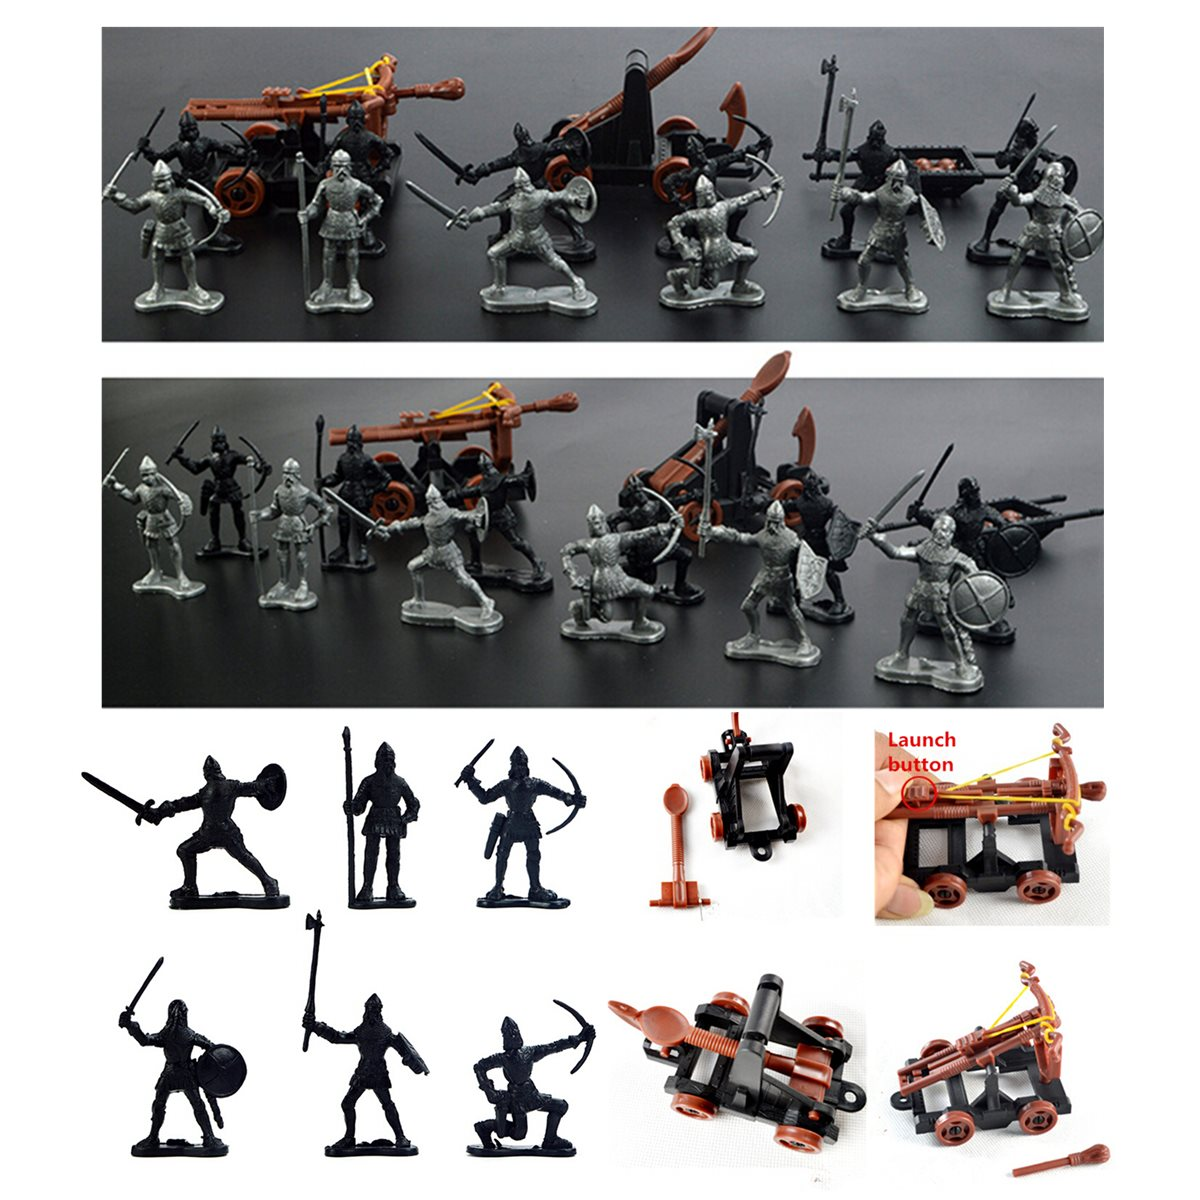 14 pcs/set Knights Medieval Toy Catapult Crossbow Soldiers Figures Playset Plastic Model Toys Gift For Children Adult hx m x16 car air vent mount holder